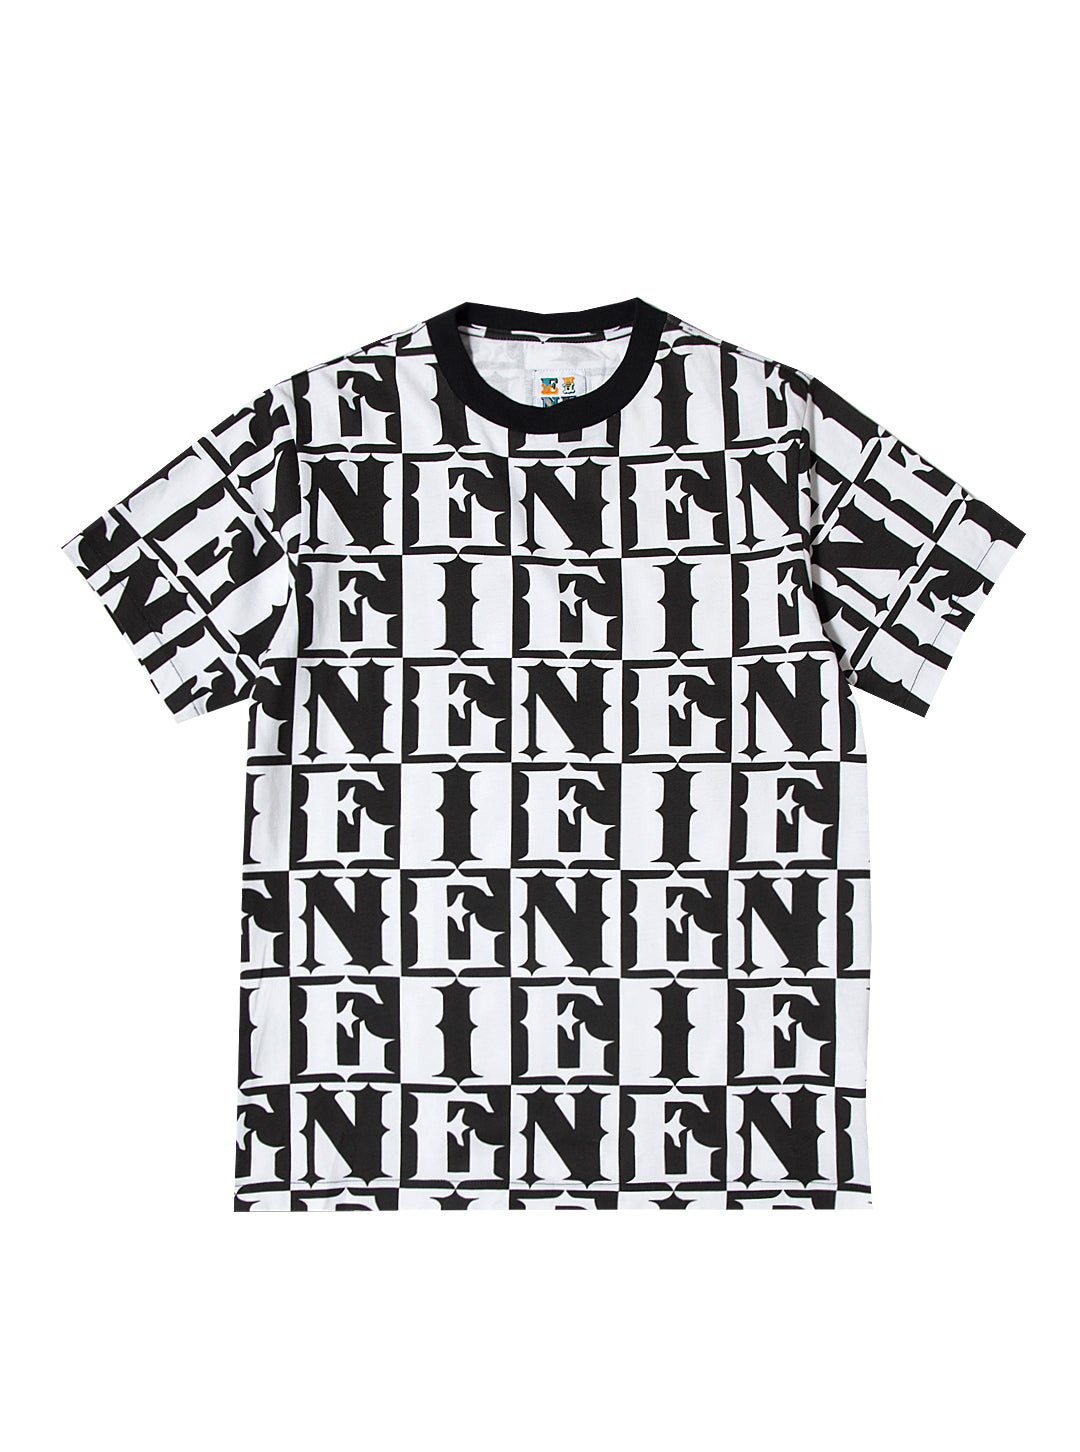 EINE Checkerboard S/S T-Shirt - Black Sample